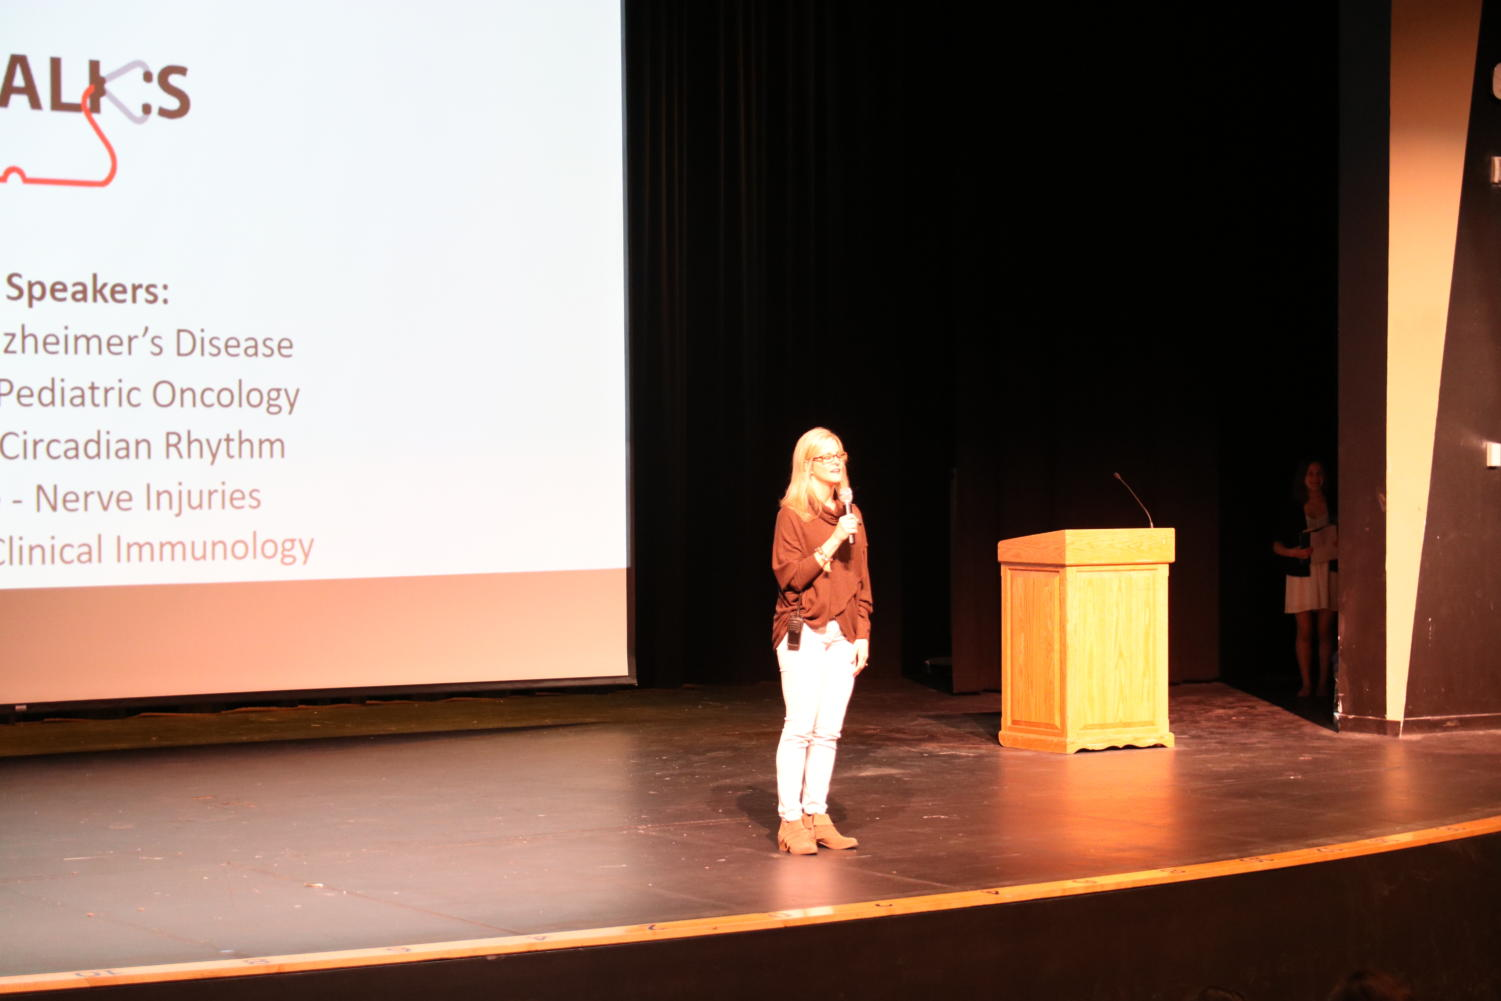 Lisa+Del+Pizzo%2C+AP+Biology+teacher%2C+starts+off+the+Med+Talks+conference+at+MHS+March+2.+She+explained+how+all+proceeds+from+the+event+would+be+going+towards+the+National+Pediatric+Cancer+Foundation.+